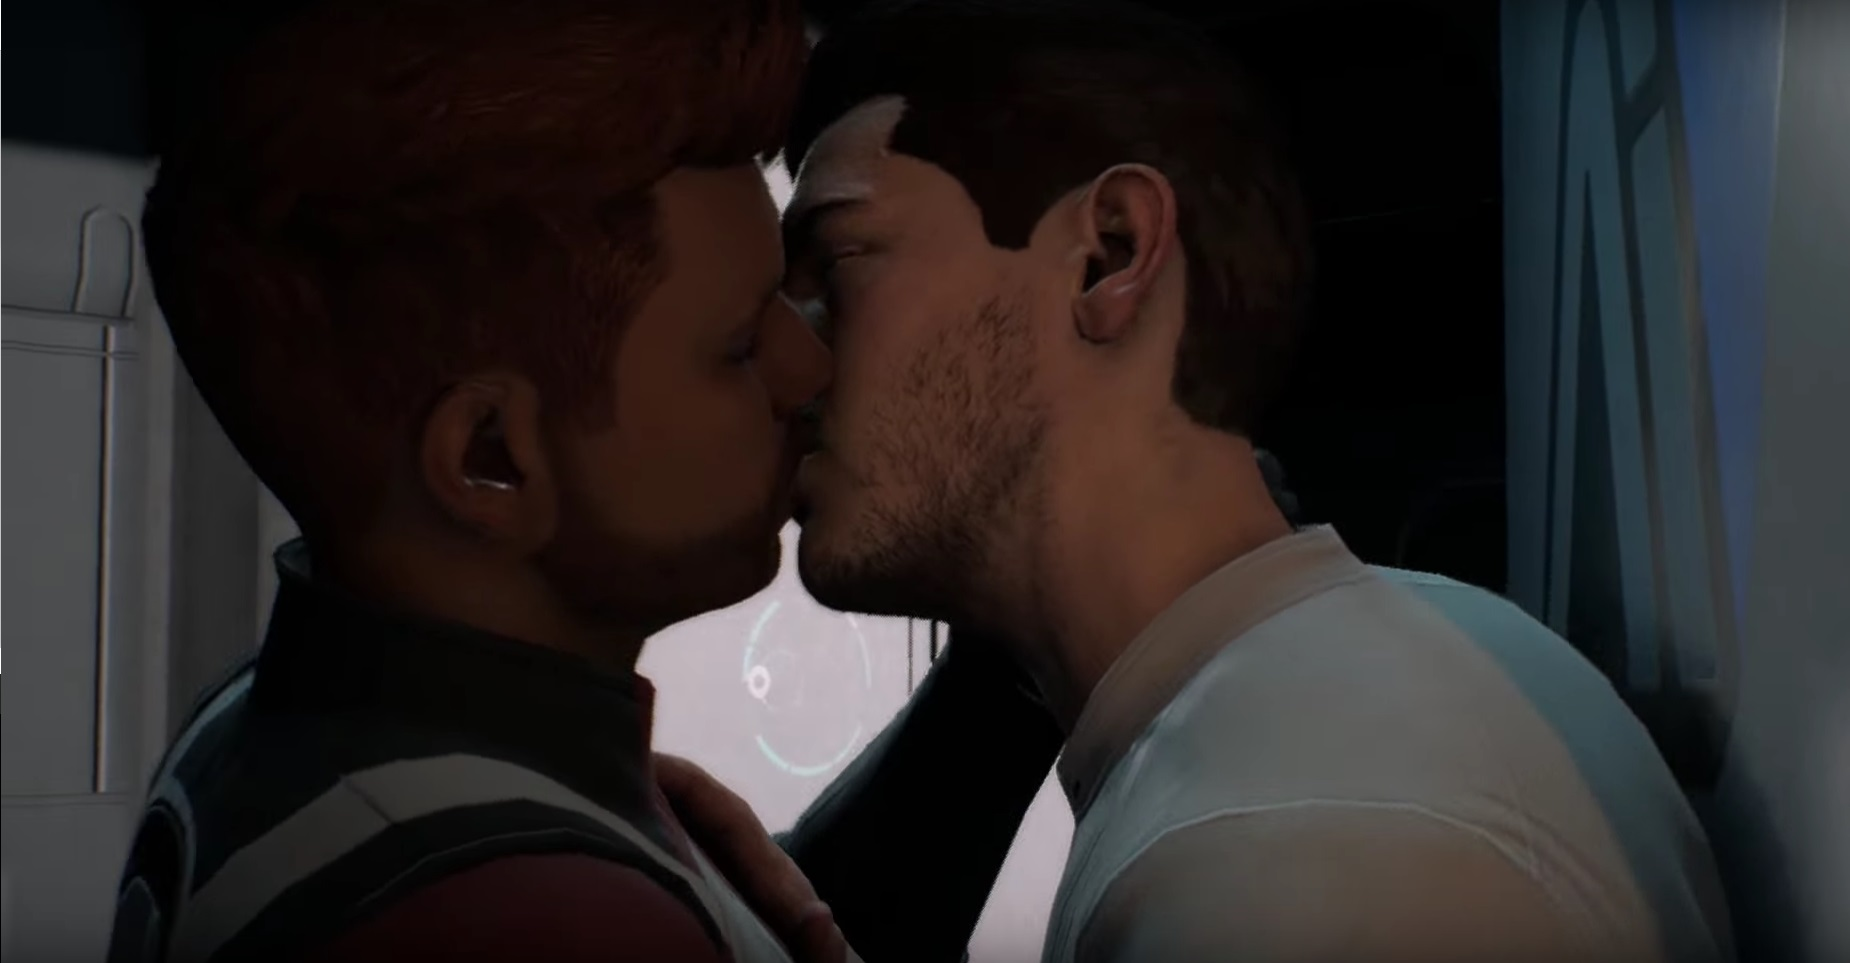 Video game 39 mass effect andromeda 39 features multiple gay storylines - Video gay romantique ...